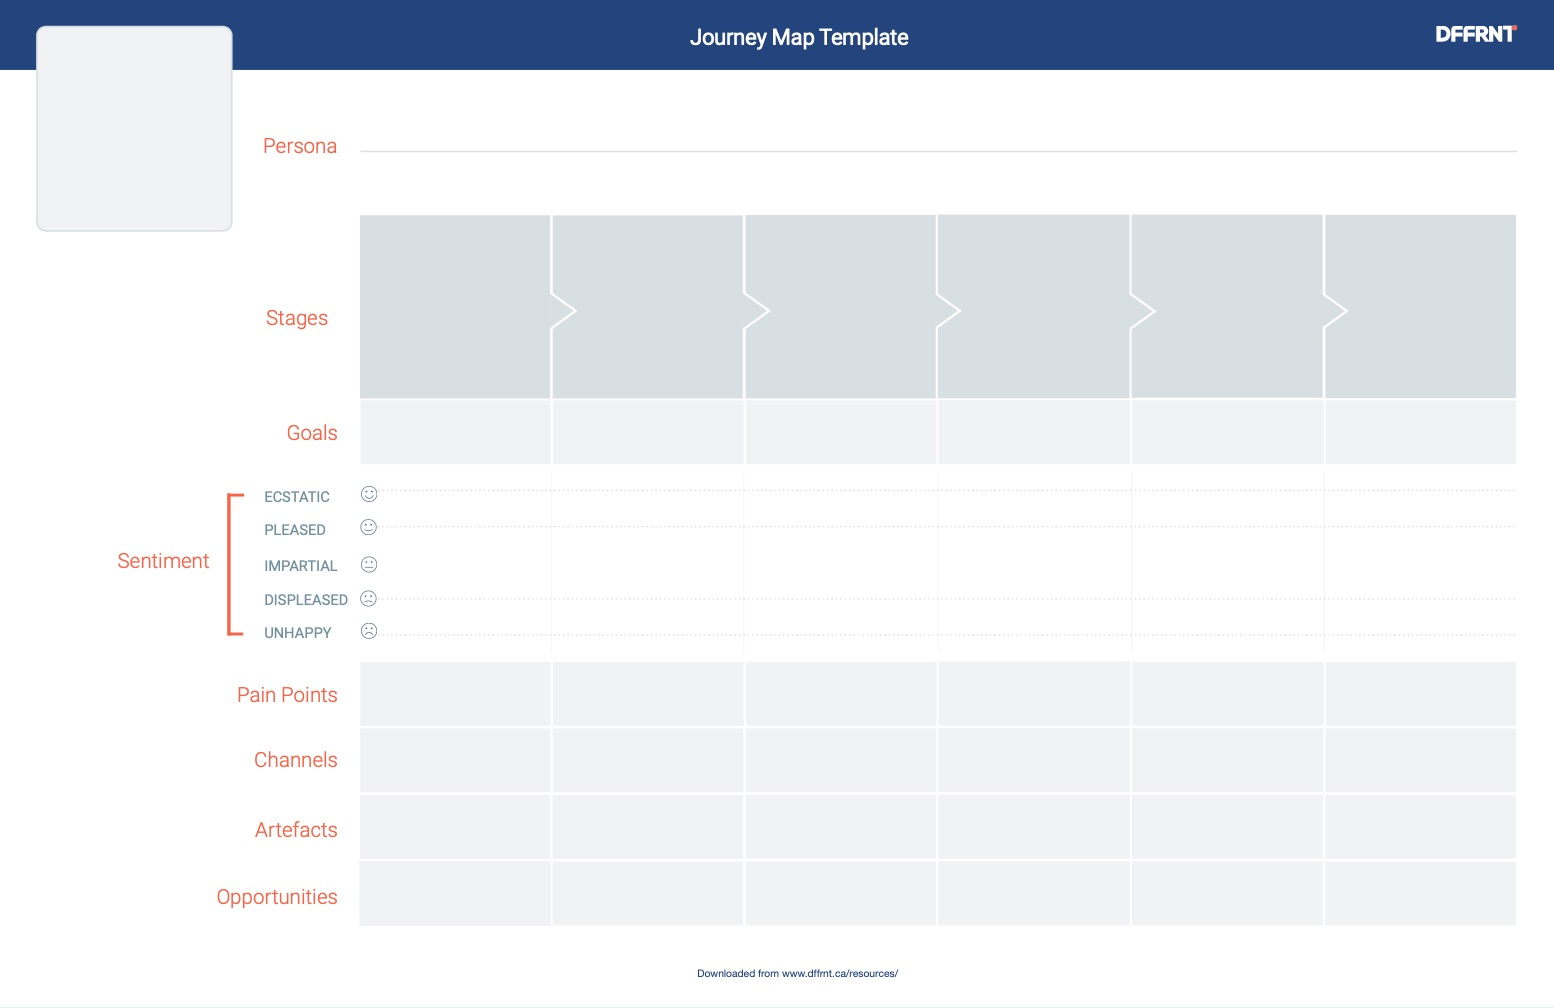 Image showing journey map template